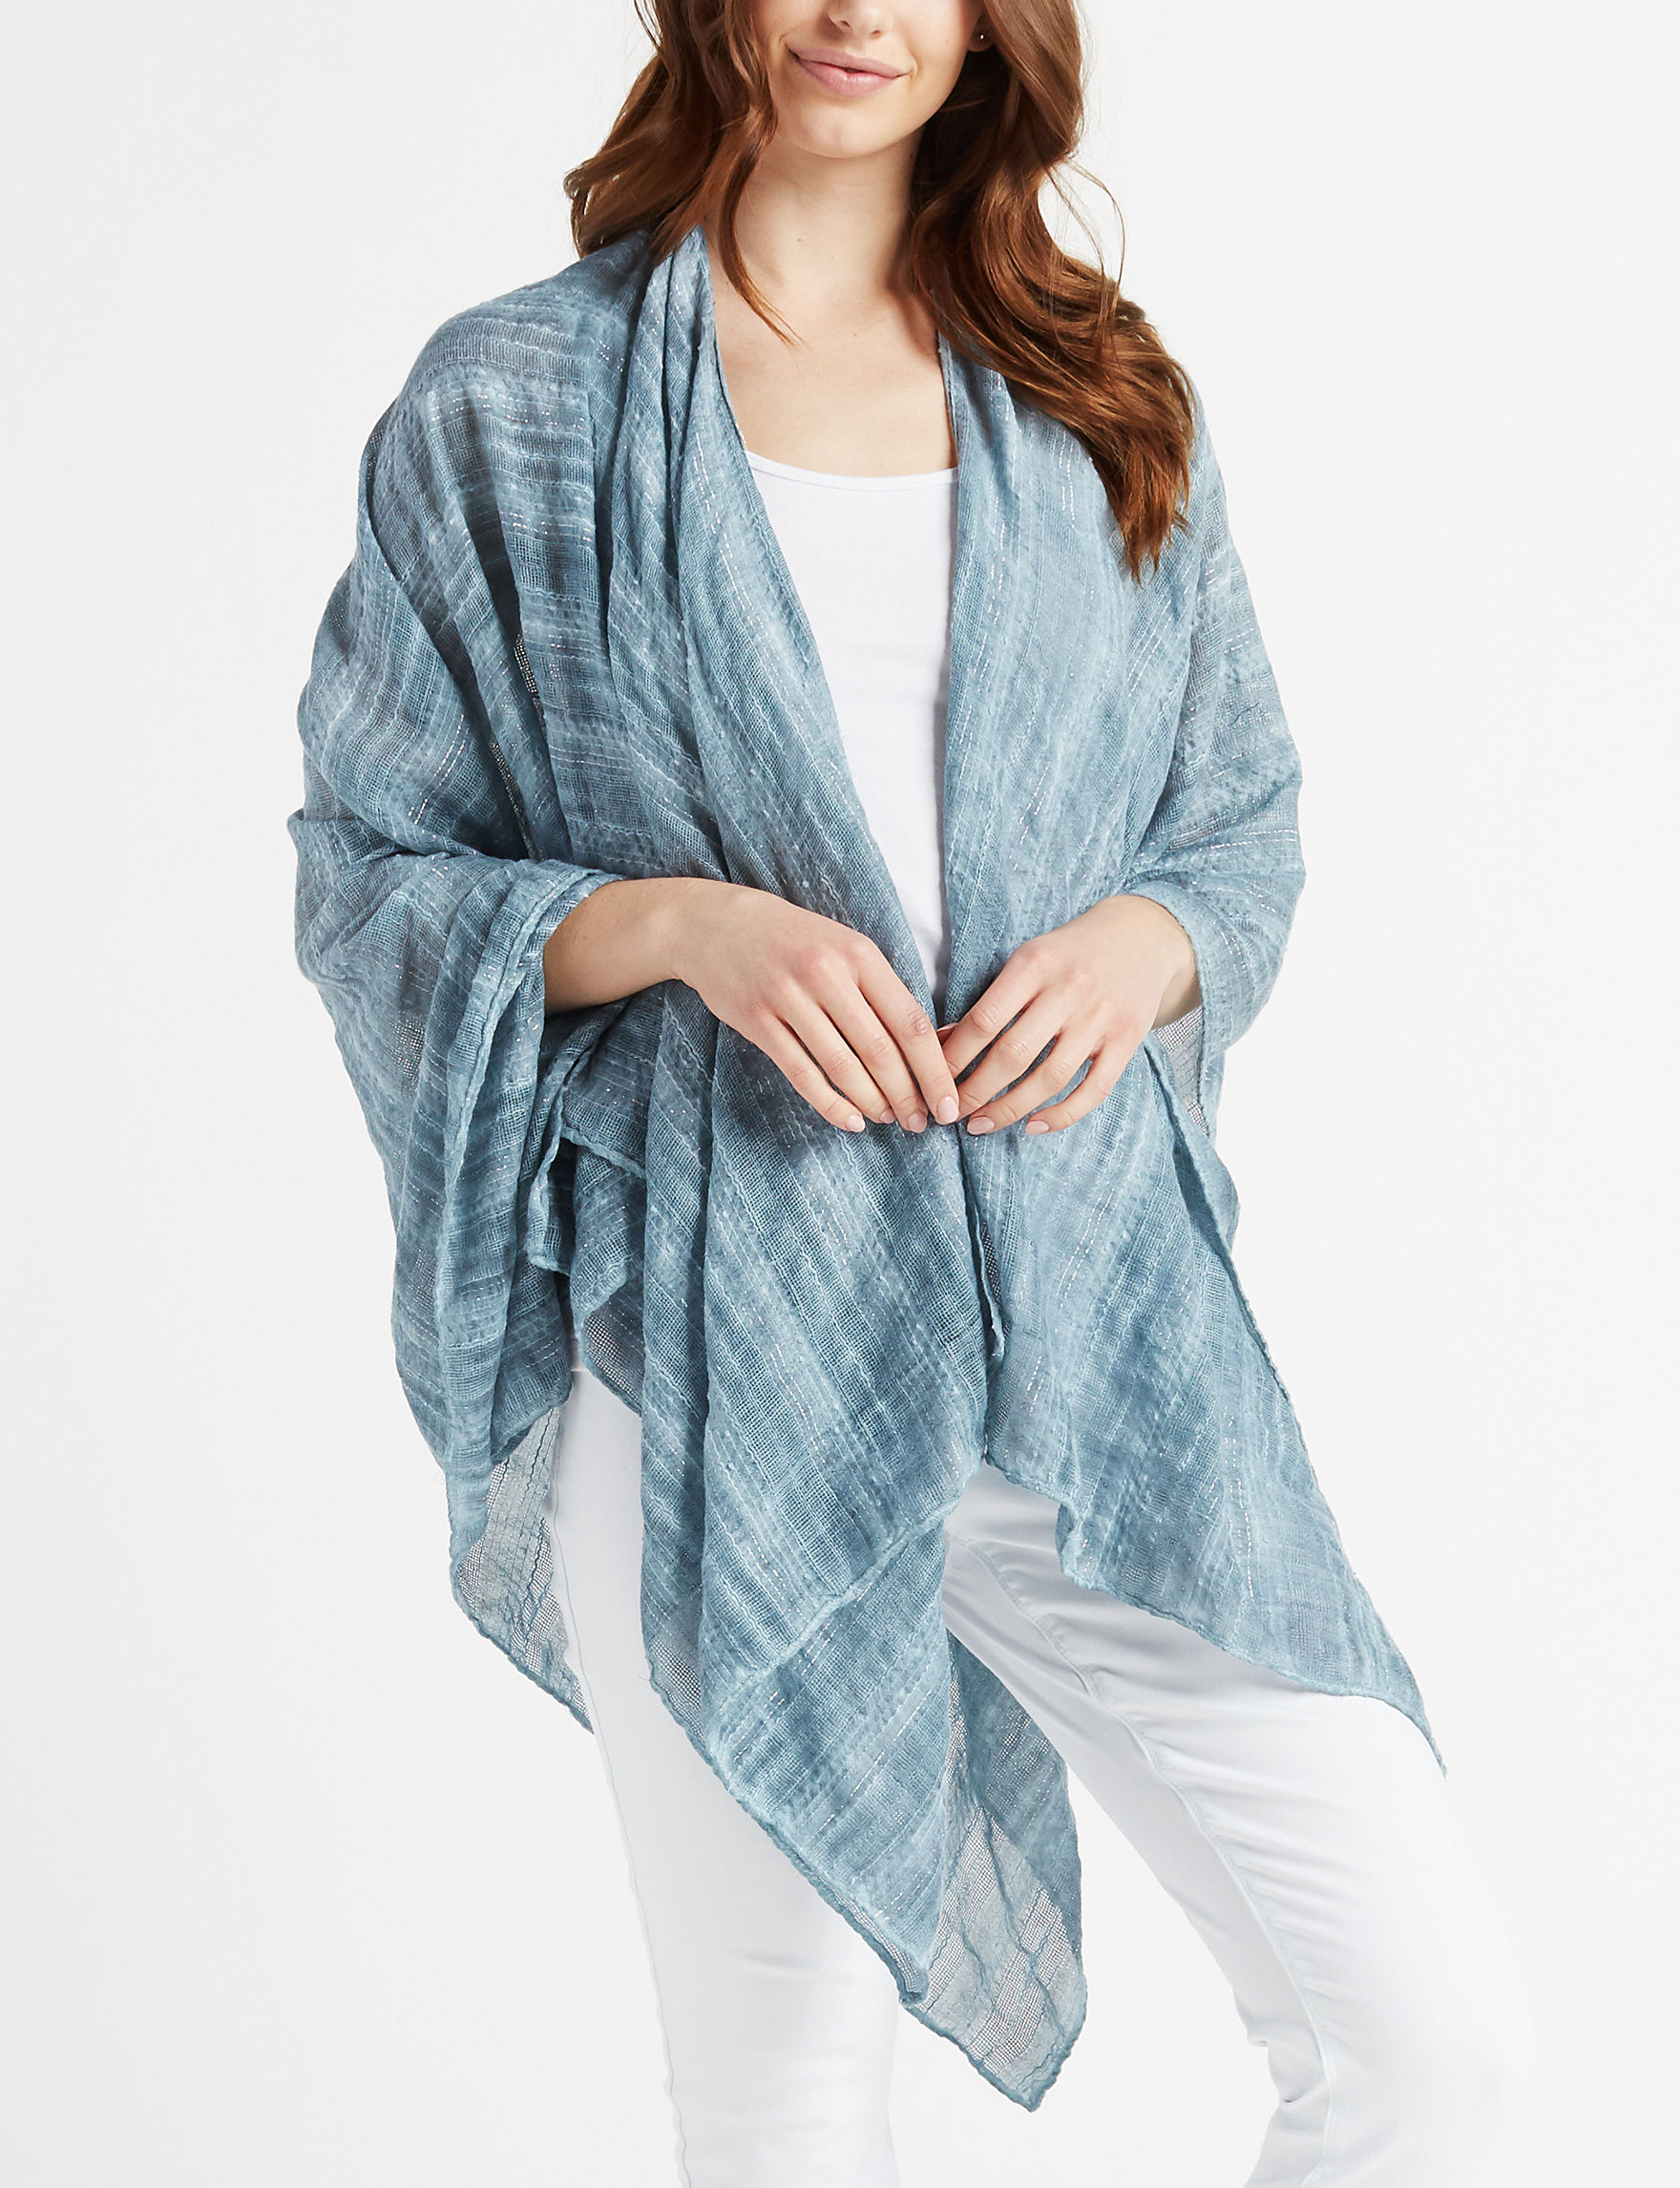 Lake Shore Drive Turquoise Scarves & Wraps Ruanas